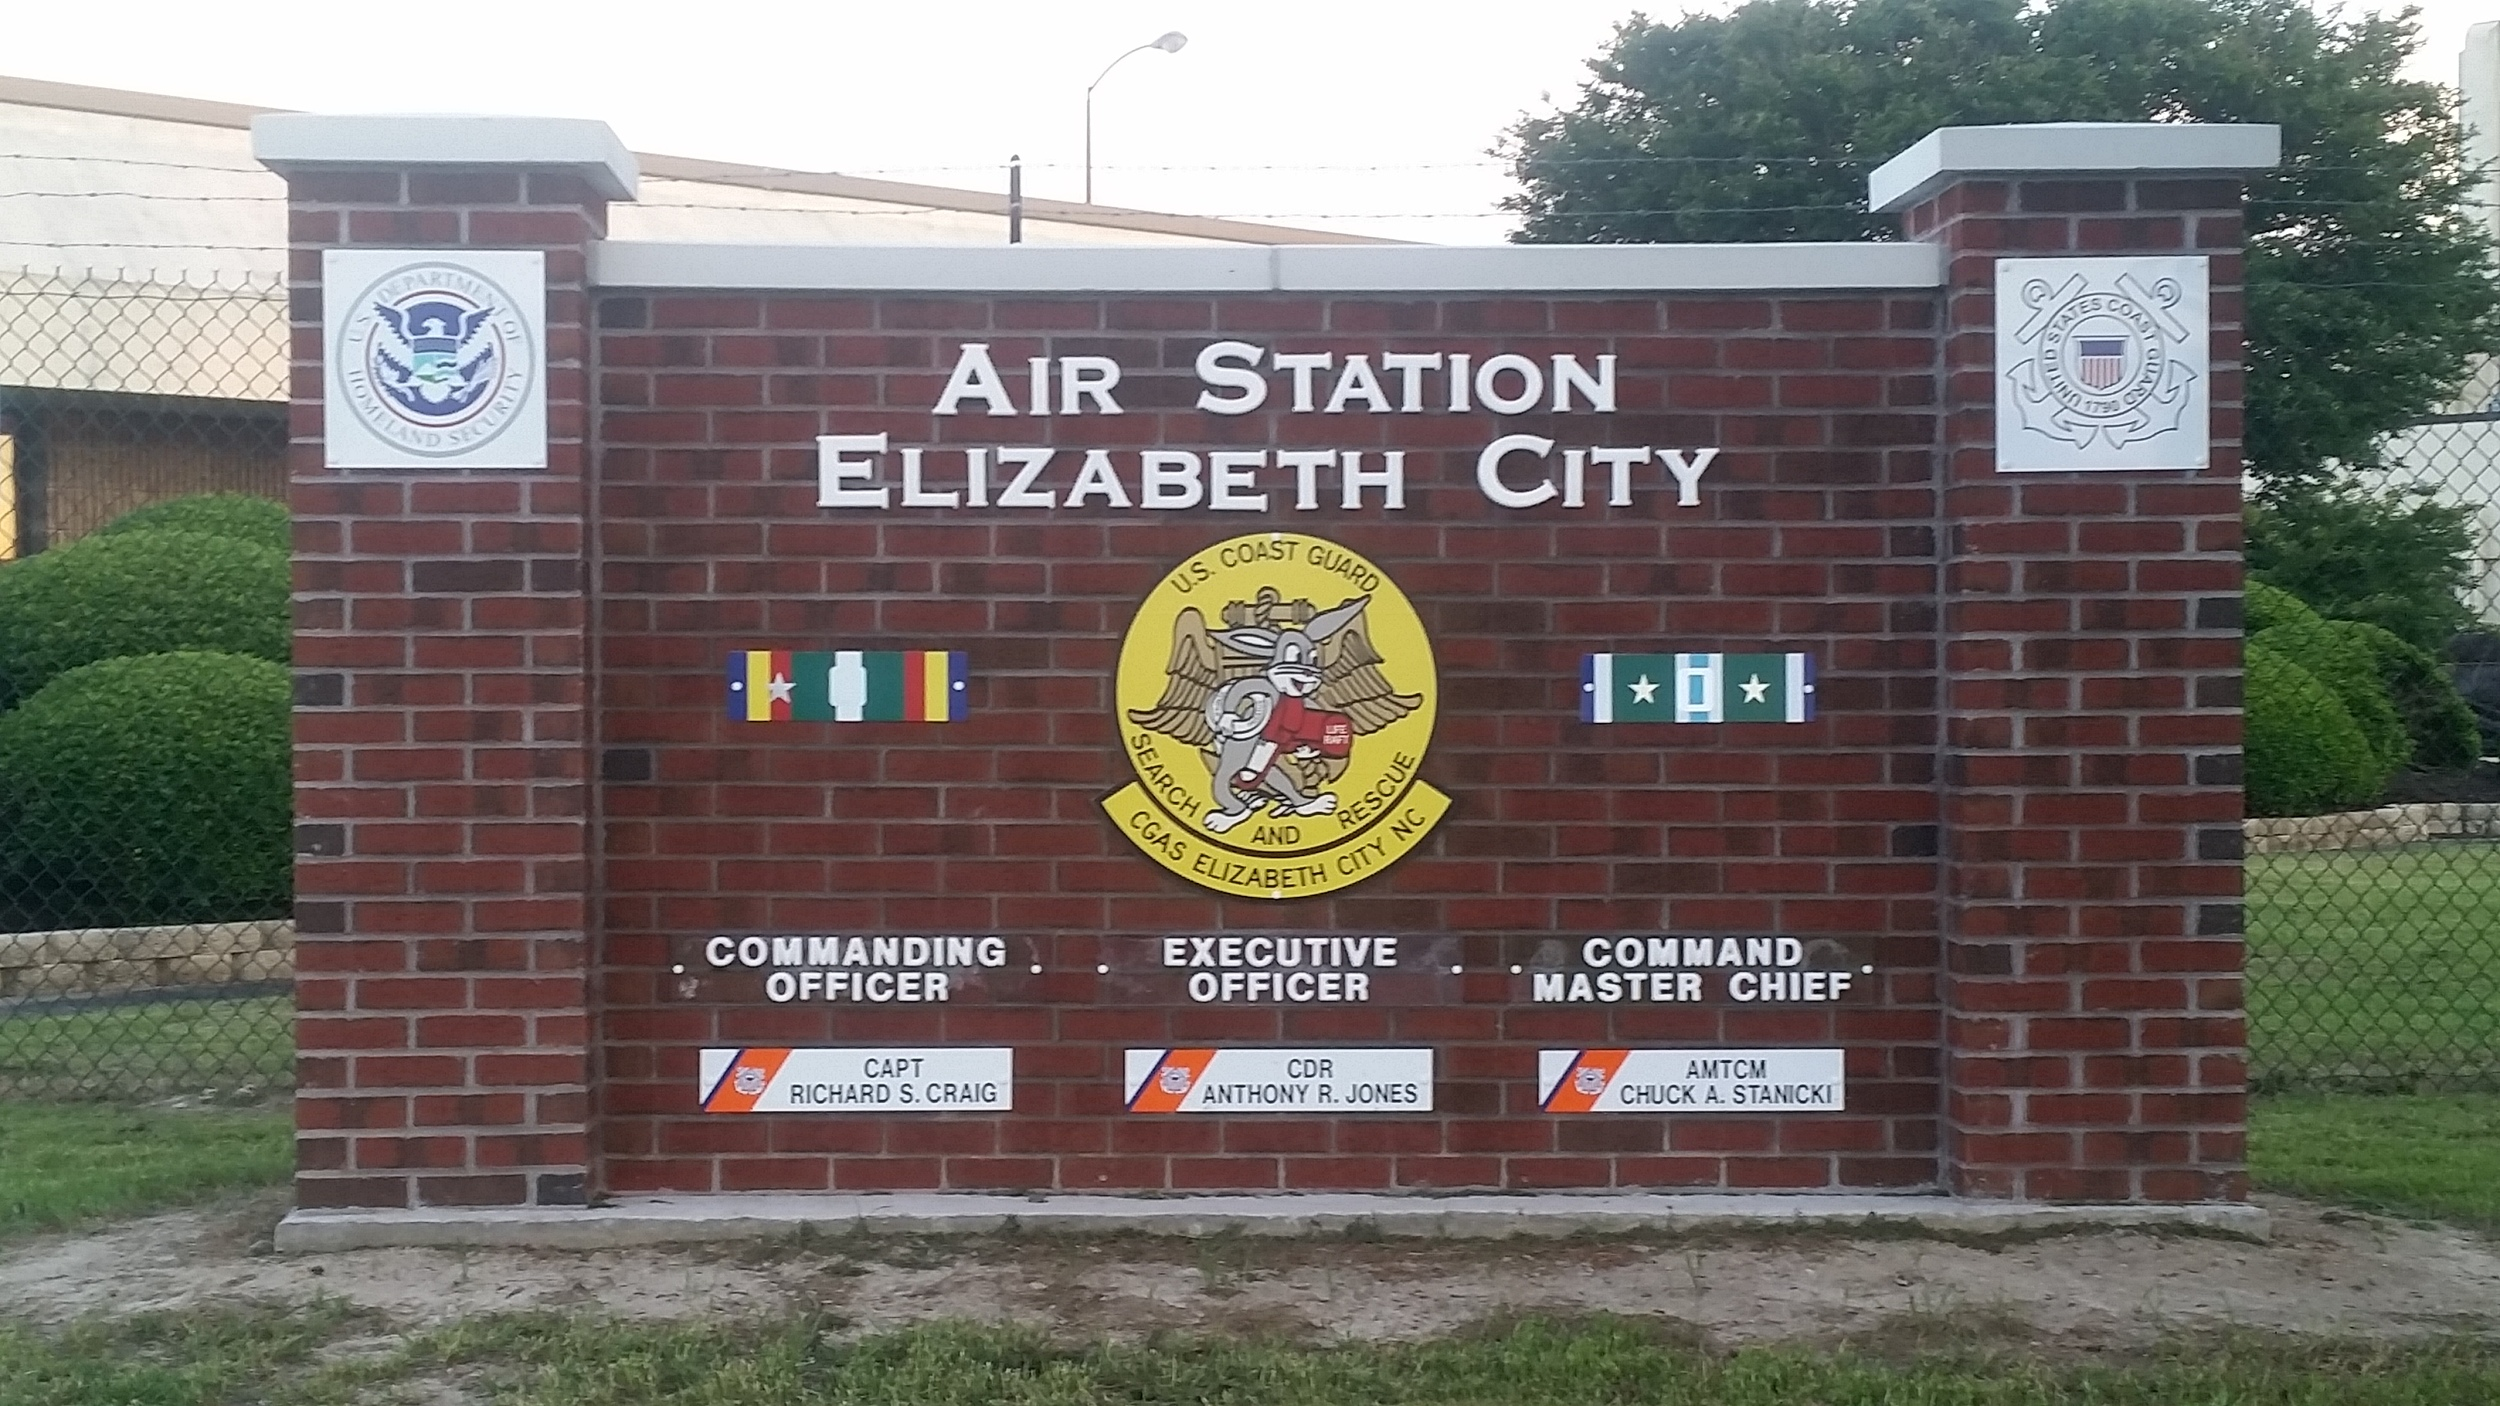 Air Station Elizabeth City